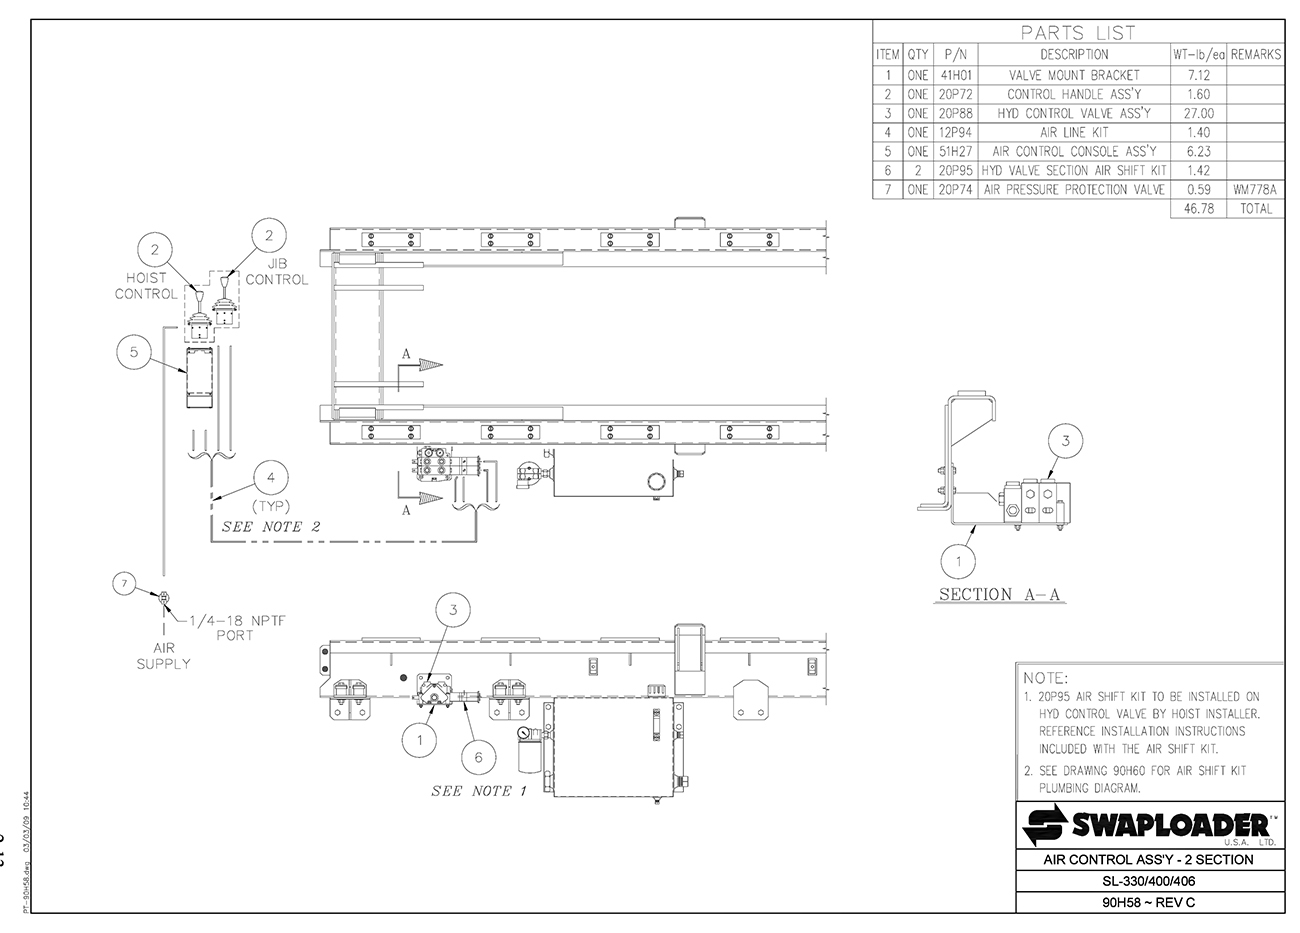 SL-330/400/406 Air Control Assembly (2 Section) Diagram